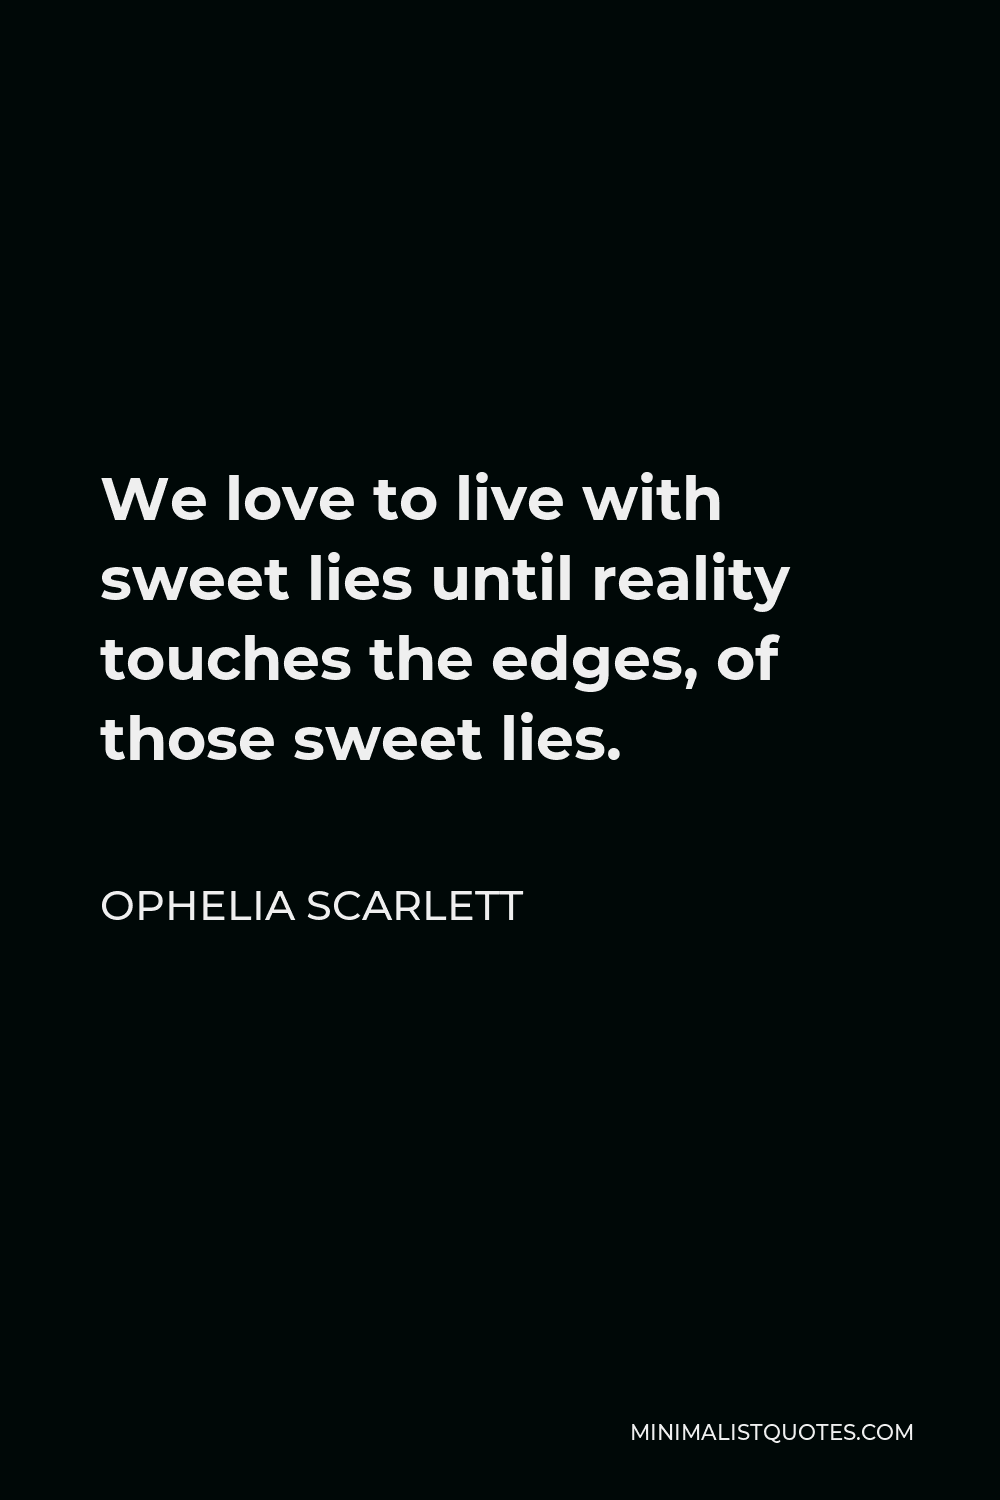 Ophelia Scarlett Quote - We love to live with sweet lies until reality touches the edges, of those sweet lies.